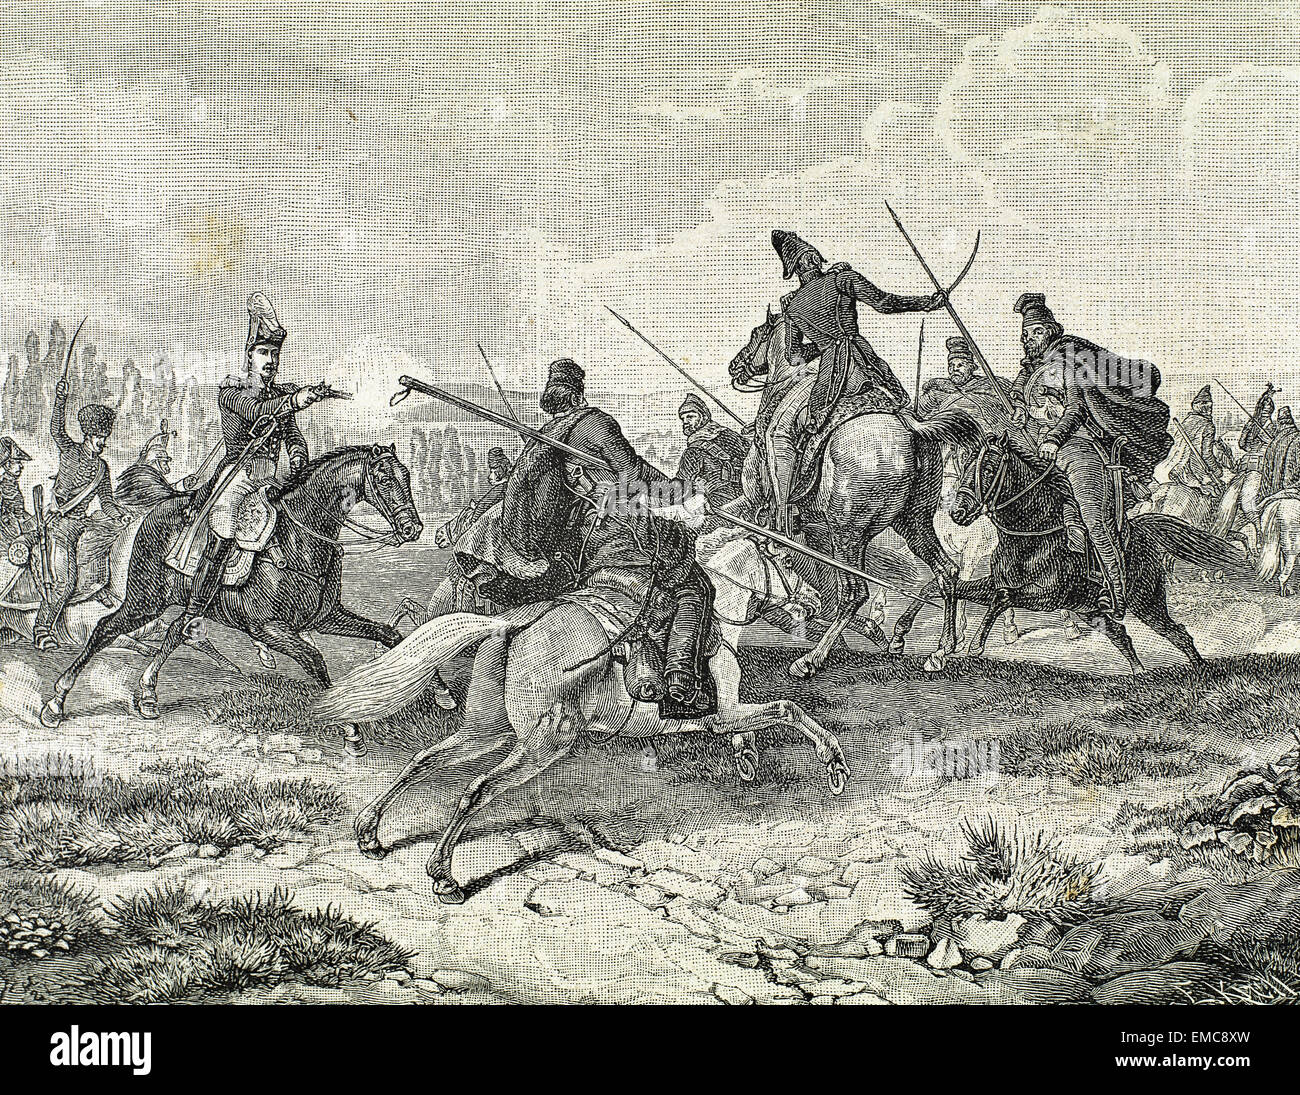 Napoleonic Wars. Struggle in Russia. Cossacks against French Army. Engraving, 19th century. - Stock Image